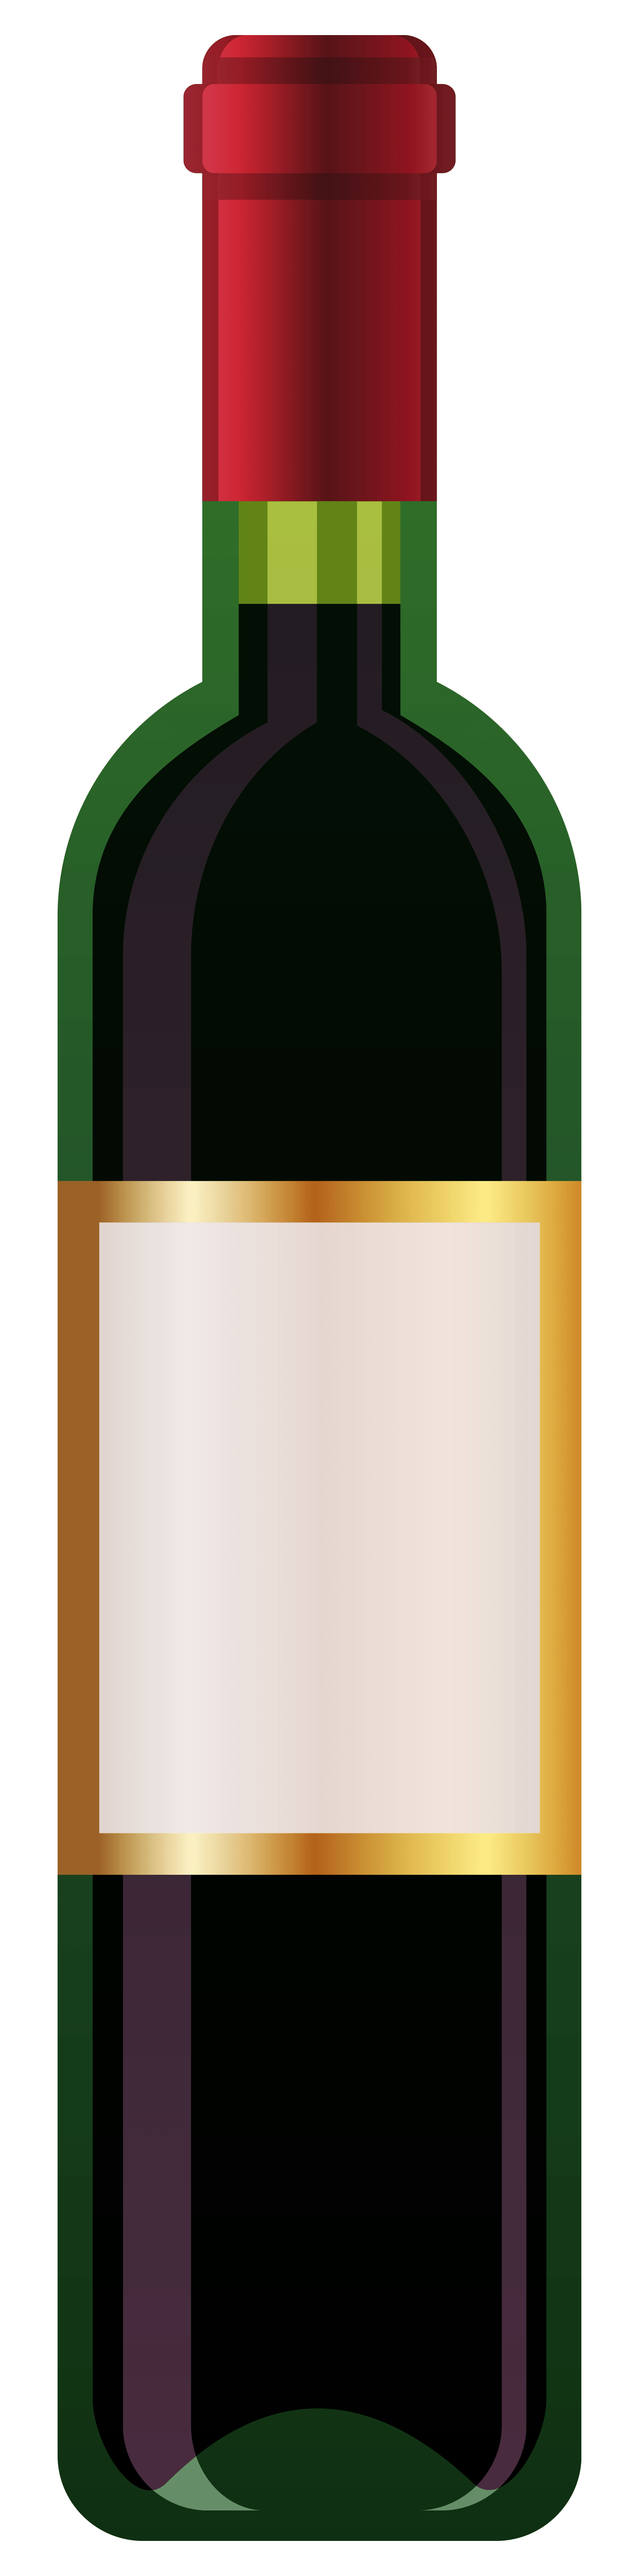 hight resolution of bottle of wine clipart